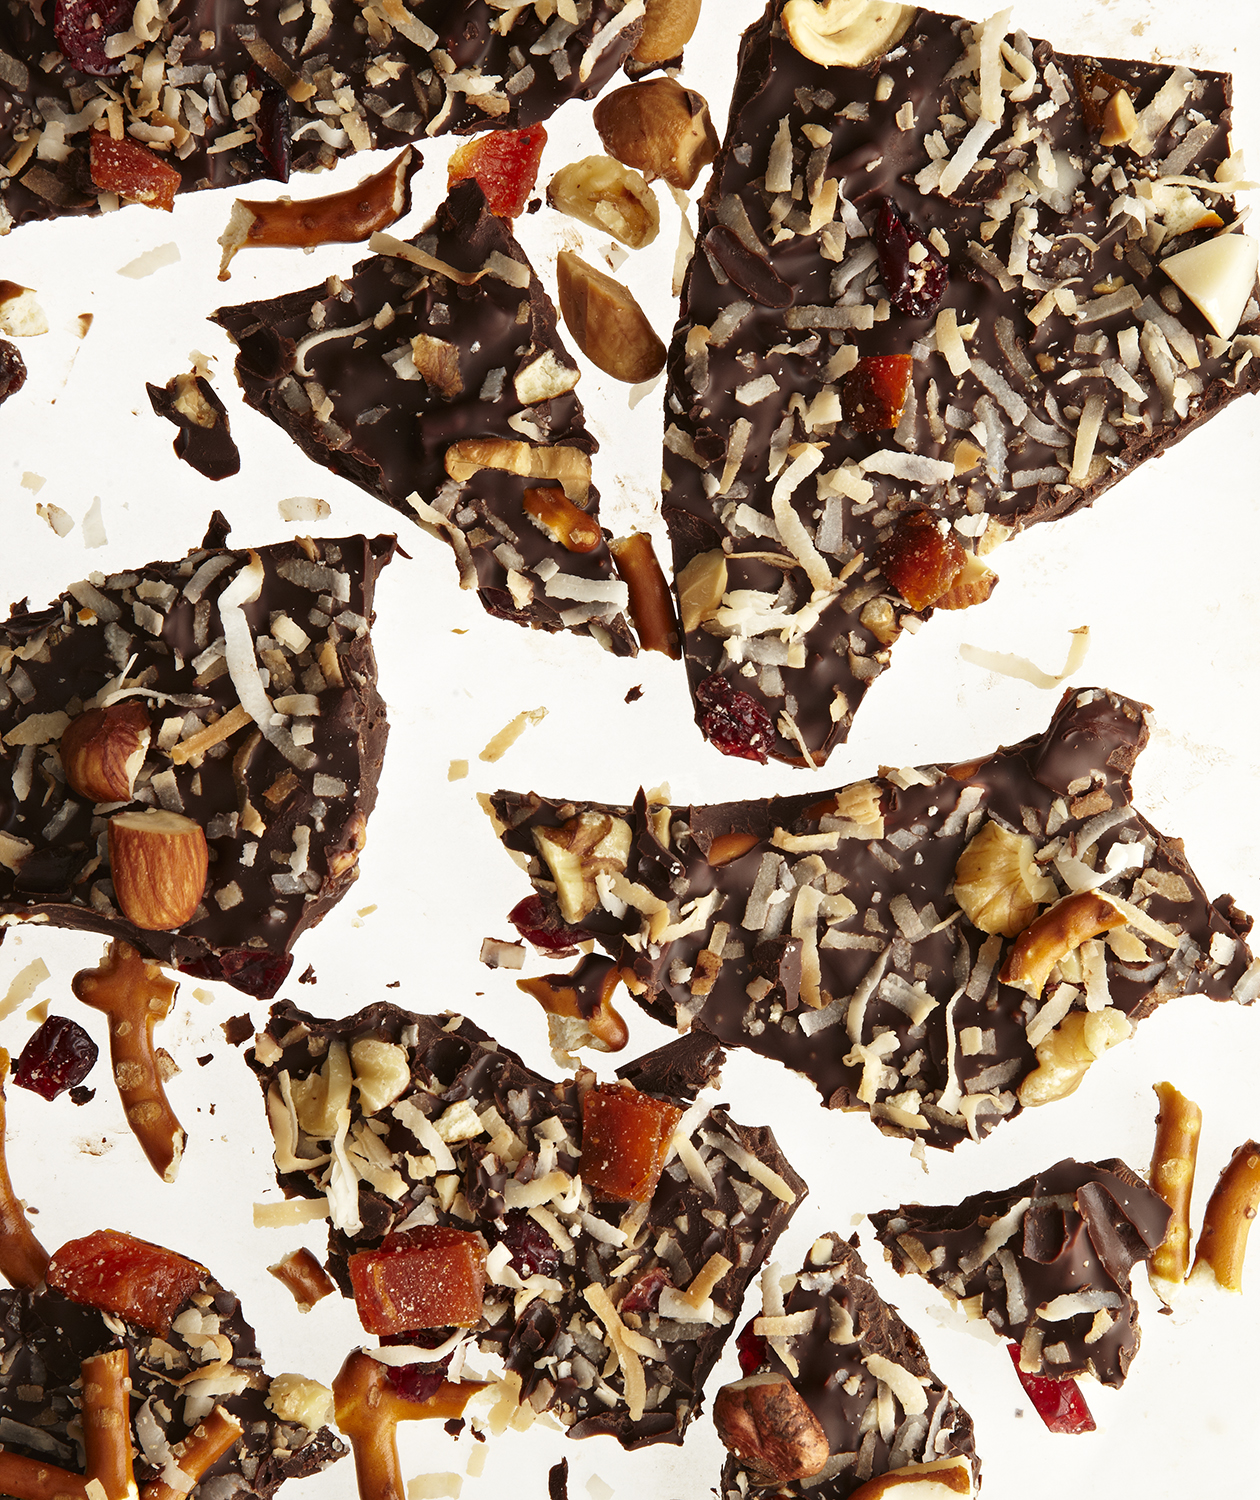 Kitchen Sink Chocolate Bark